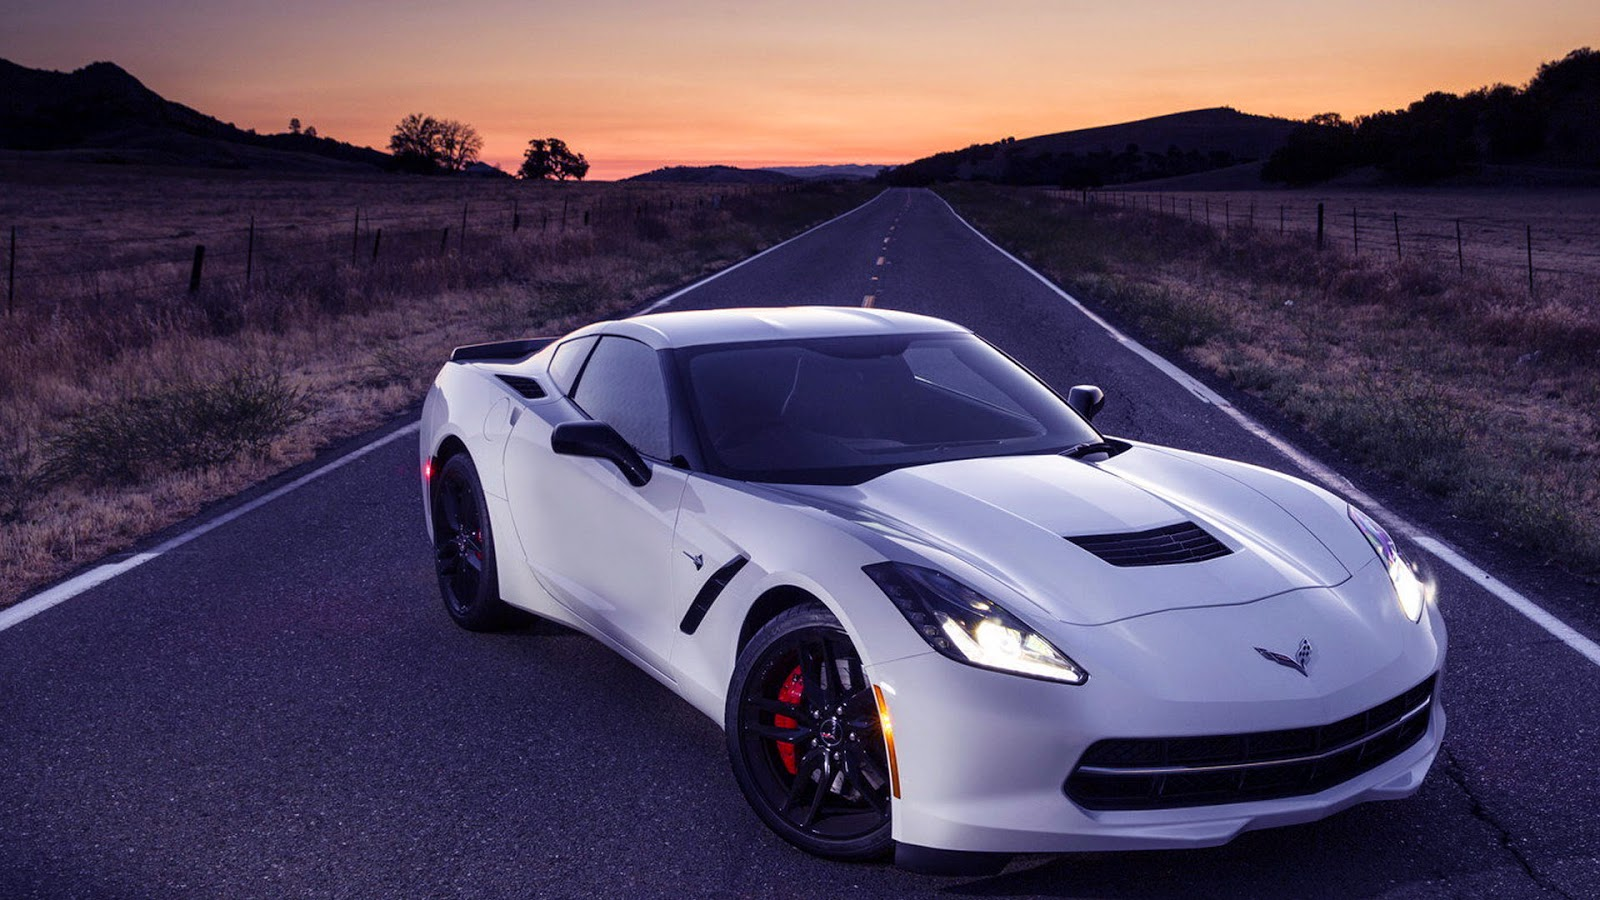 2015 chevrolet corvette z06 review,price